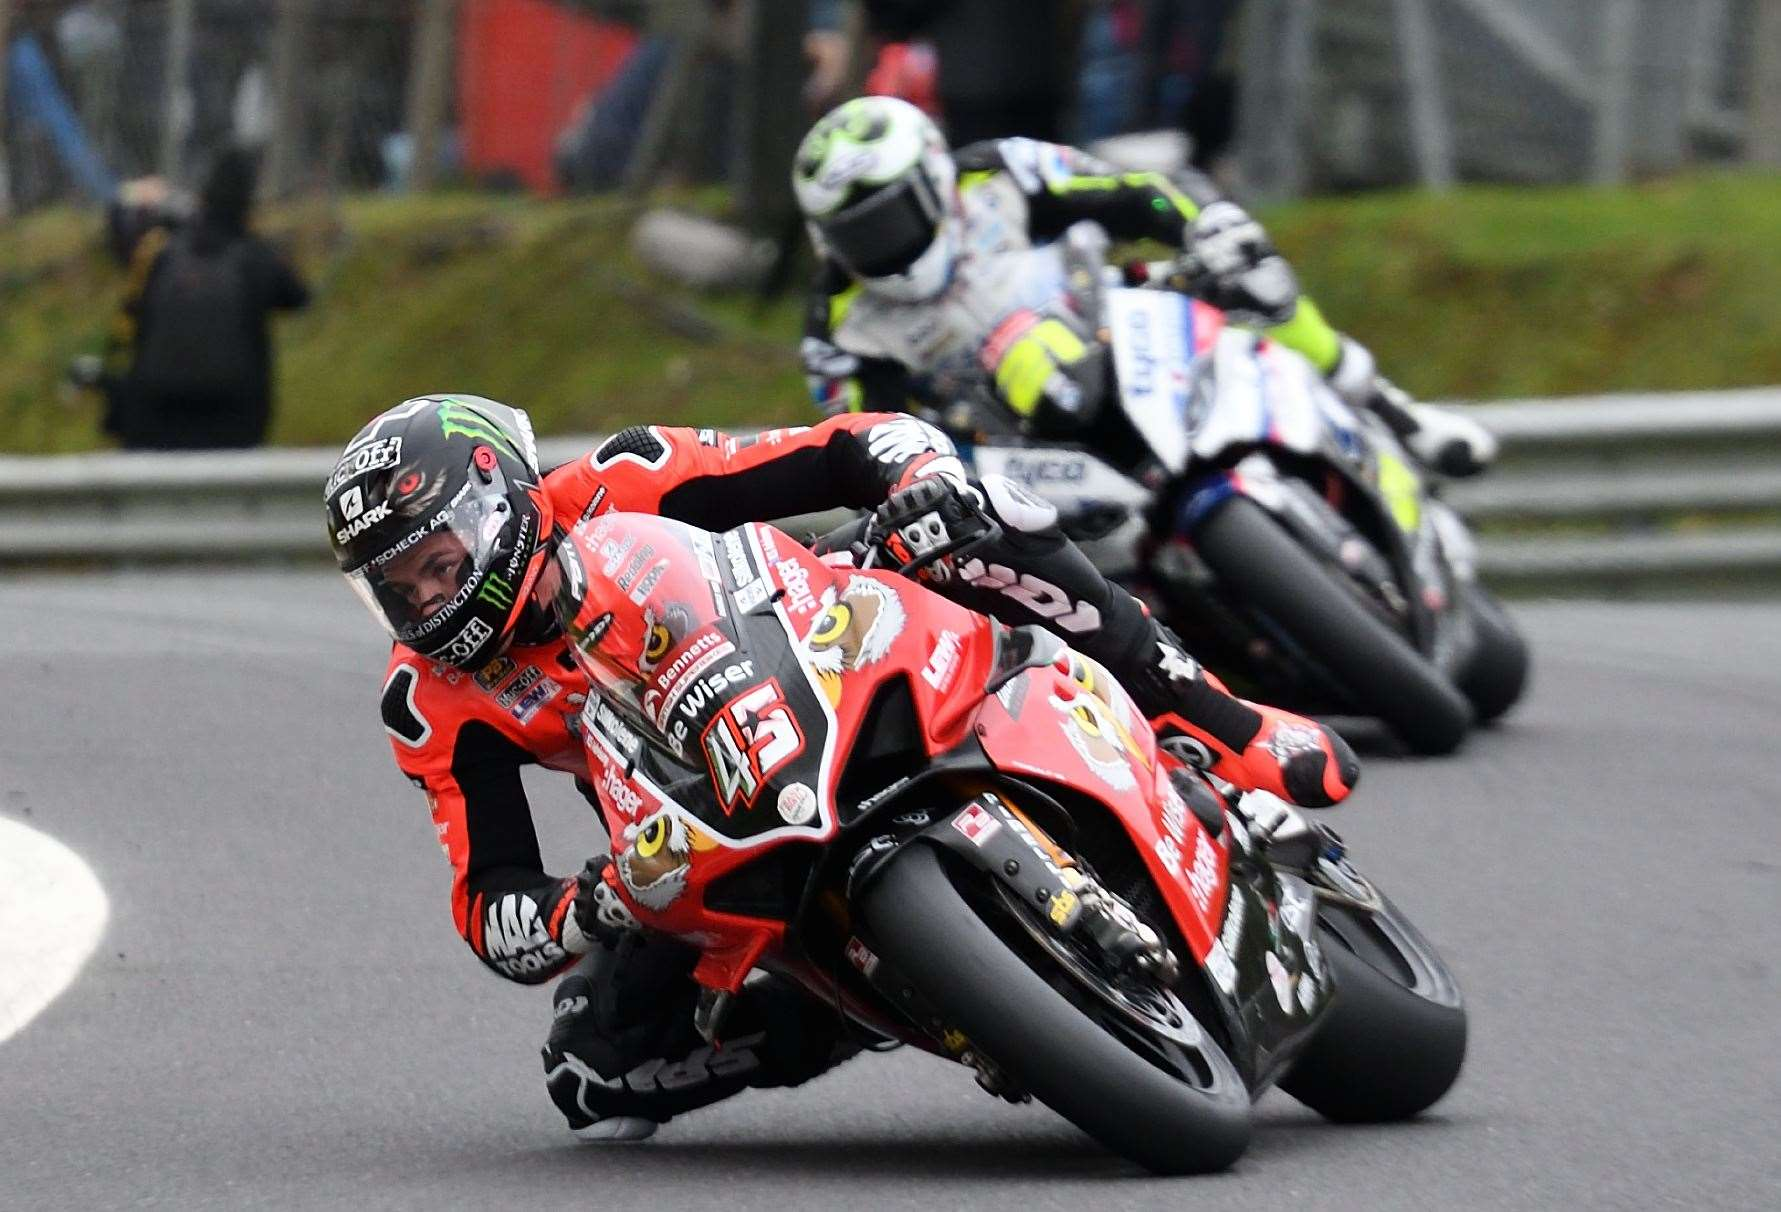 Scott Redding (45) on his way to championship success at Brands Hatch on Sunday. Picture: Simon Hildrew